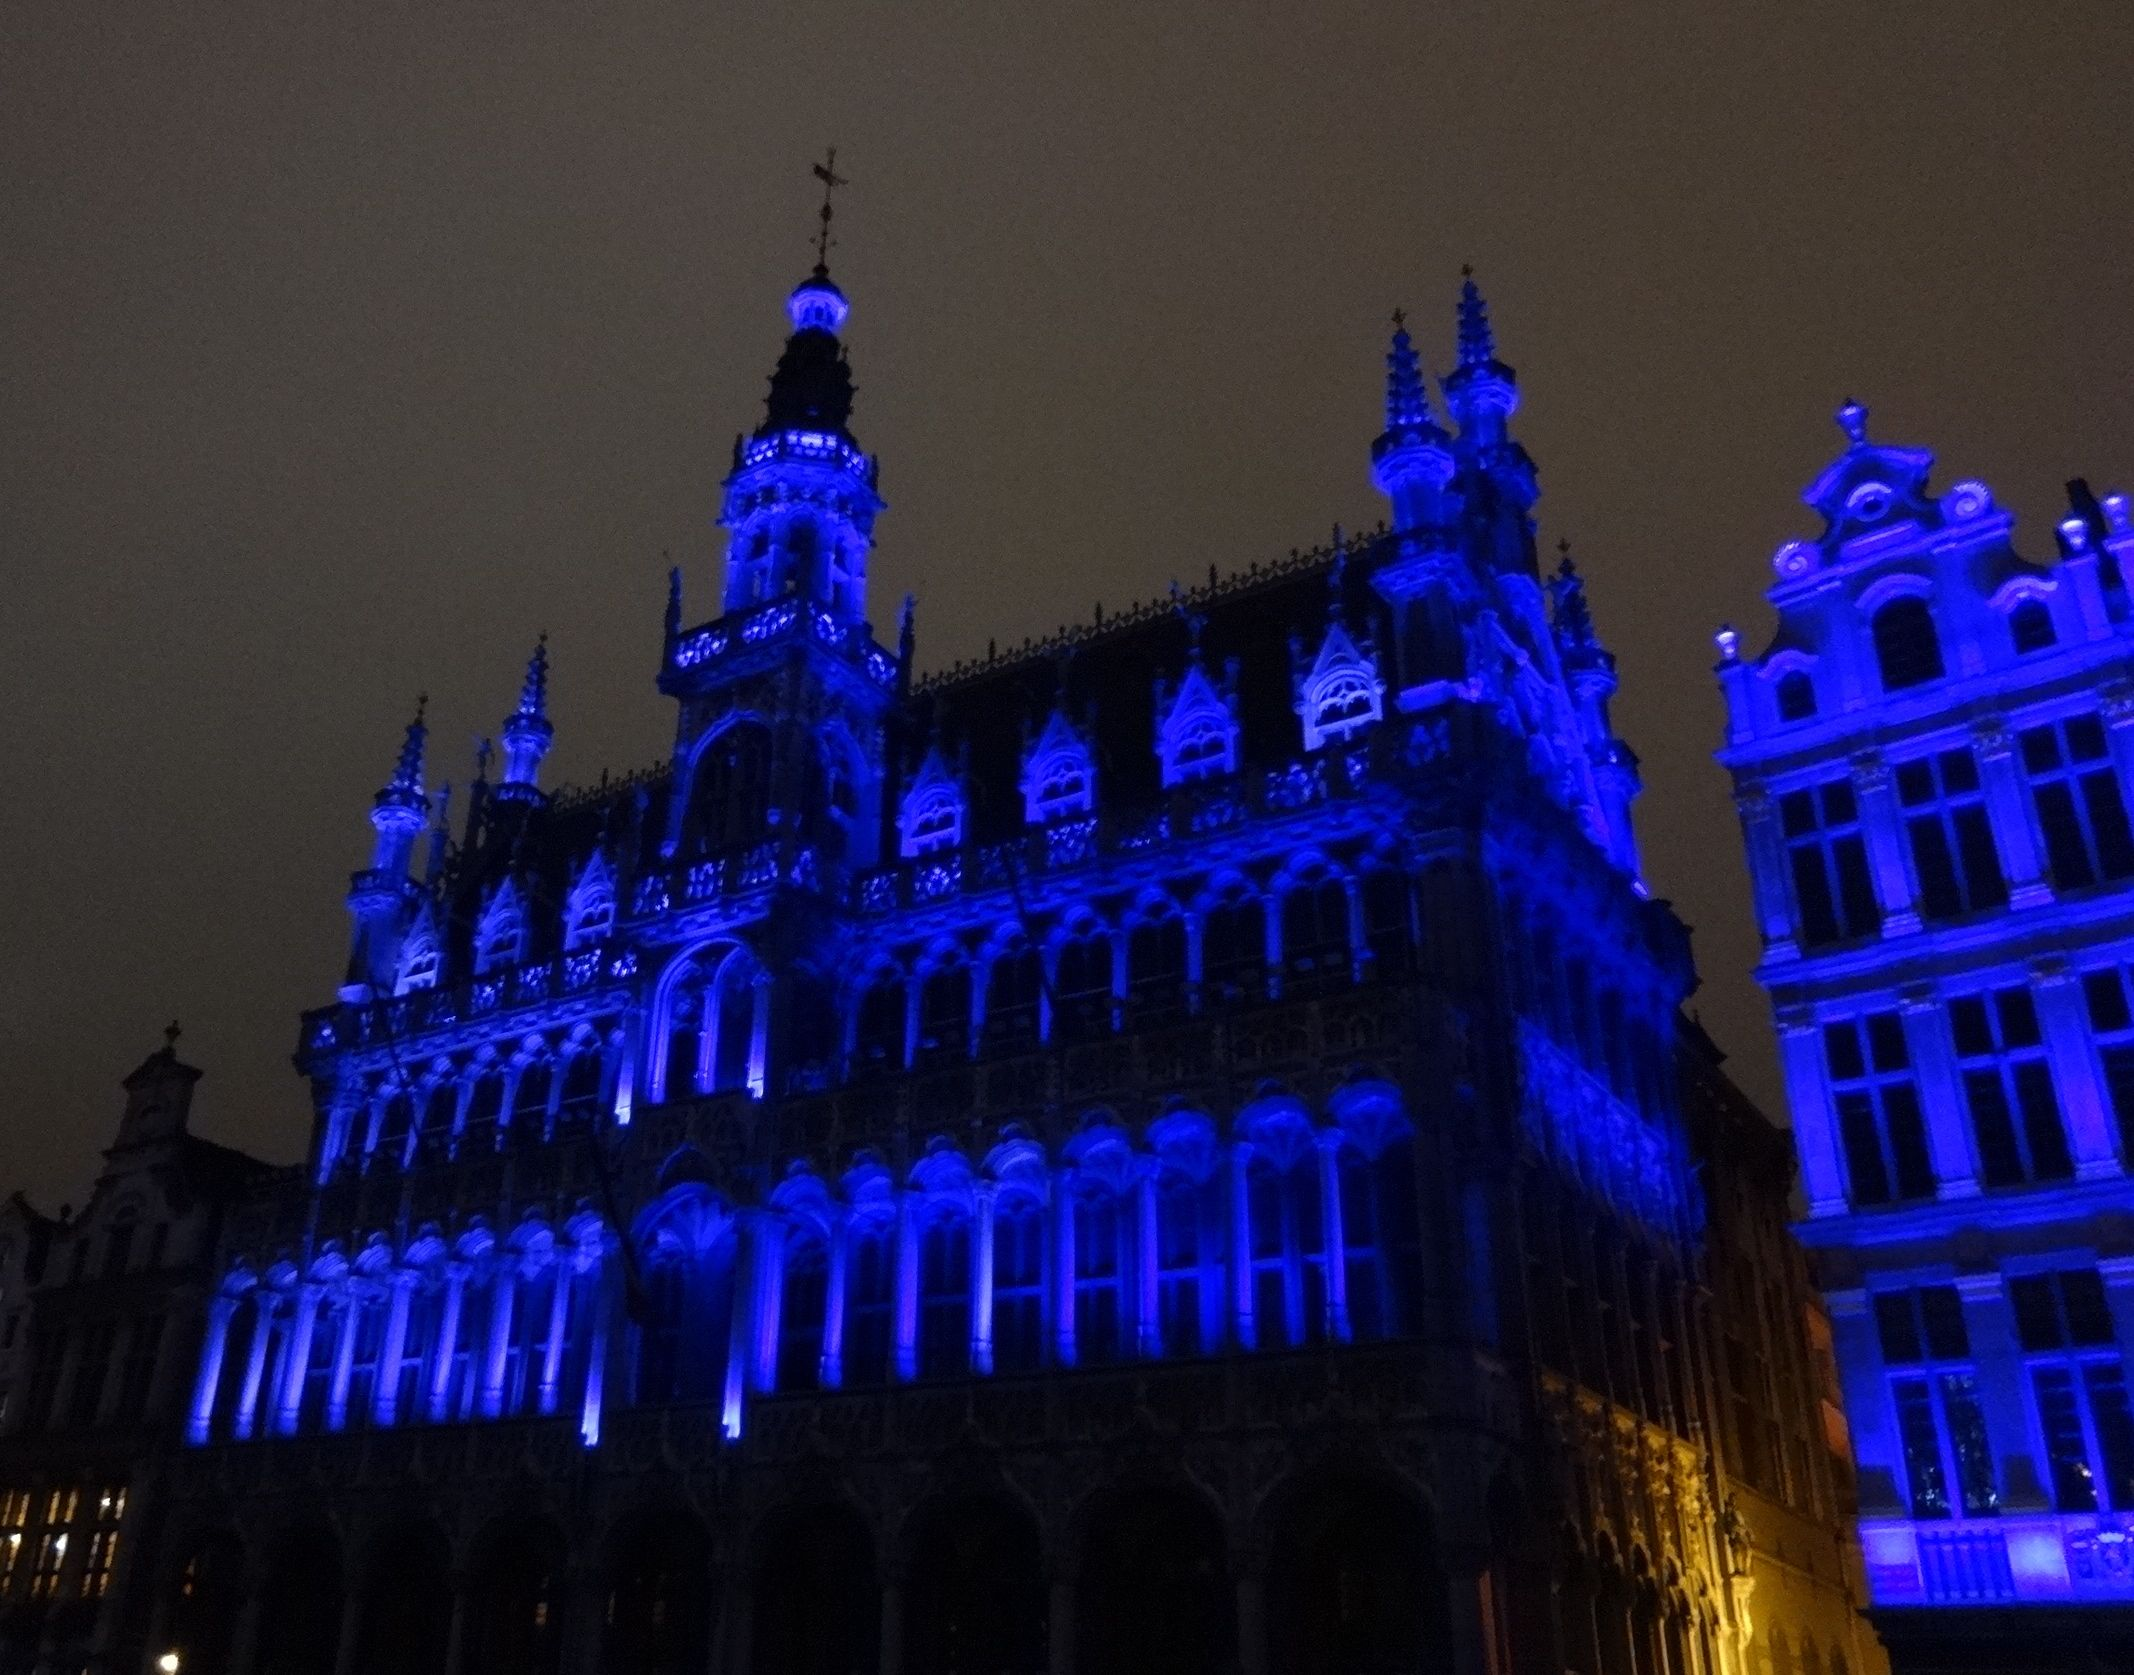 http://www.theladytravels.com/wp-content/uploads/Brussels-Christmas-2014-Grand-Place-Maison-du-Roi-blue.jpg